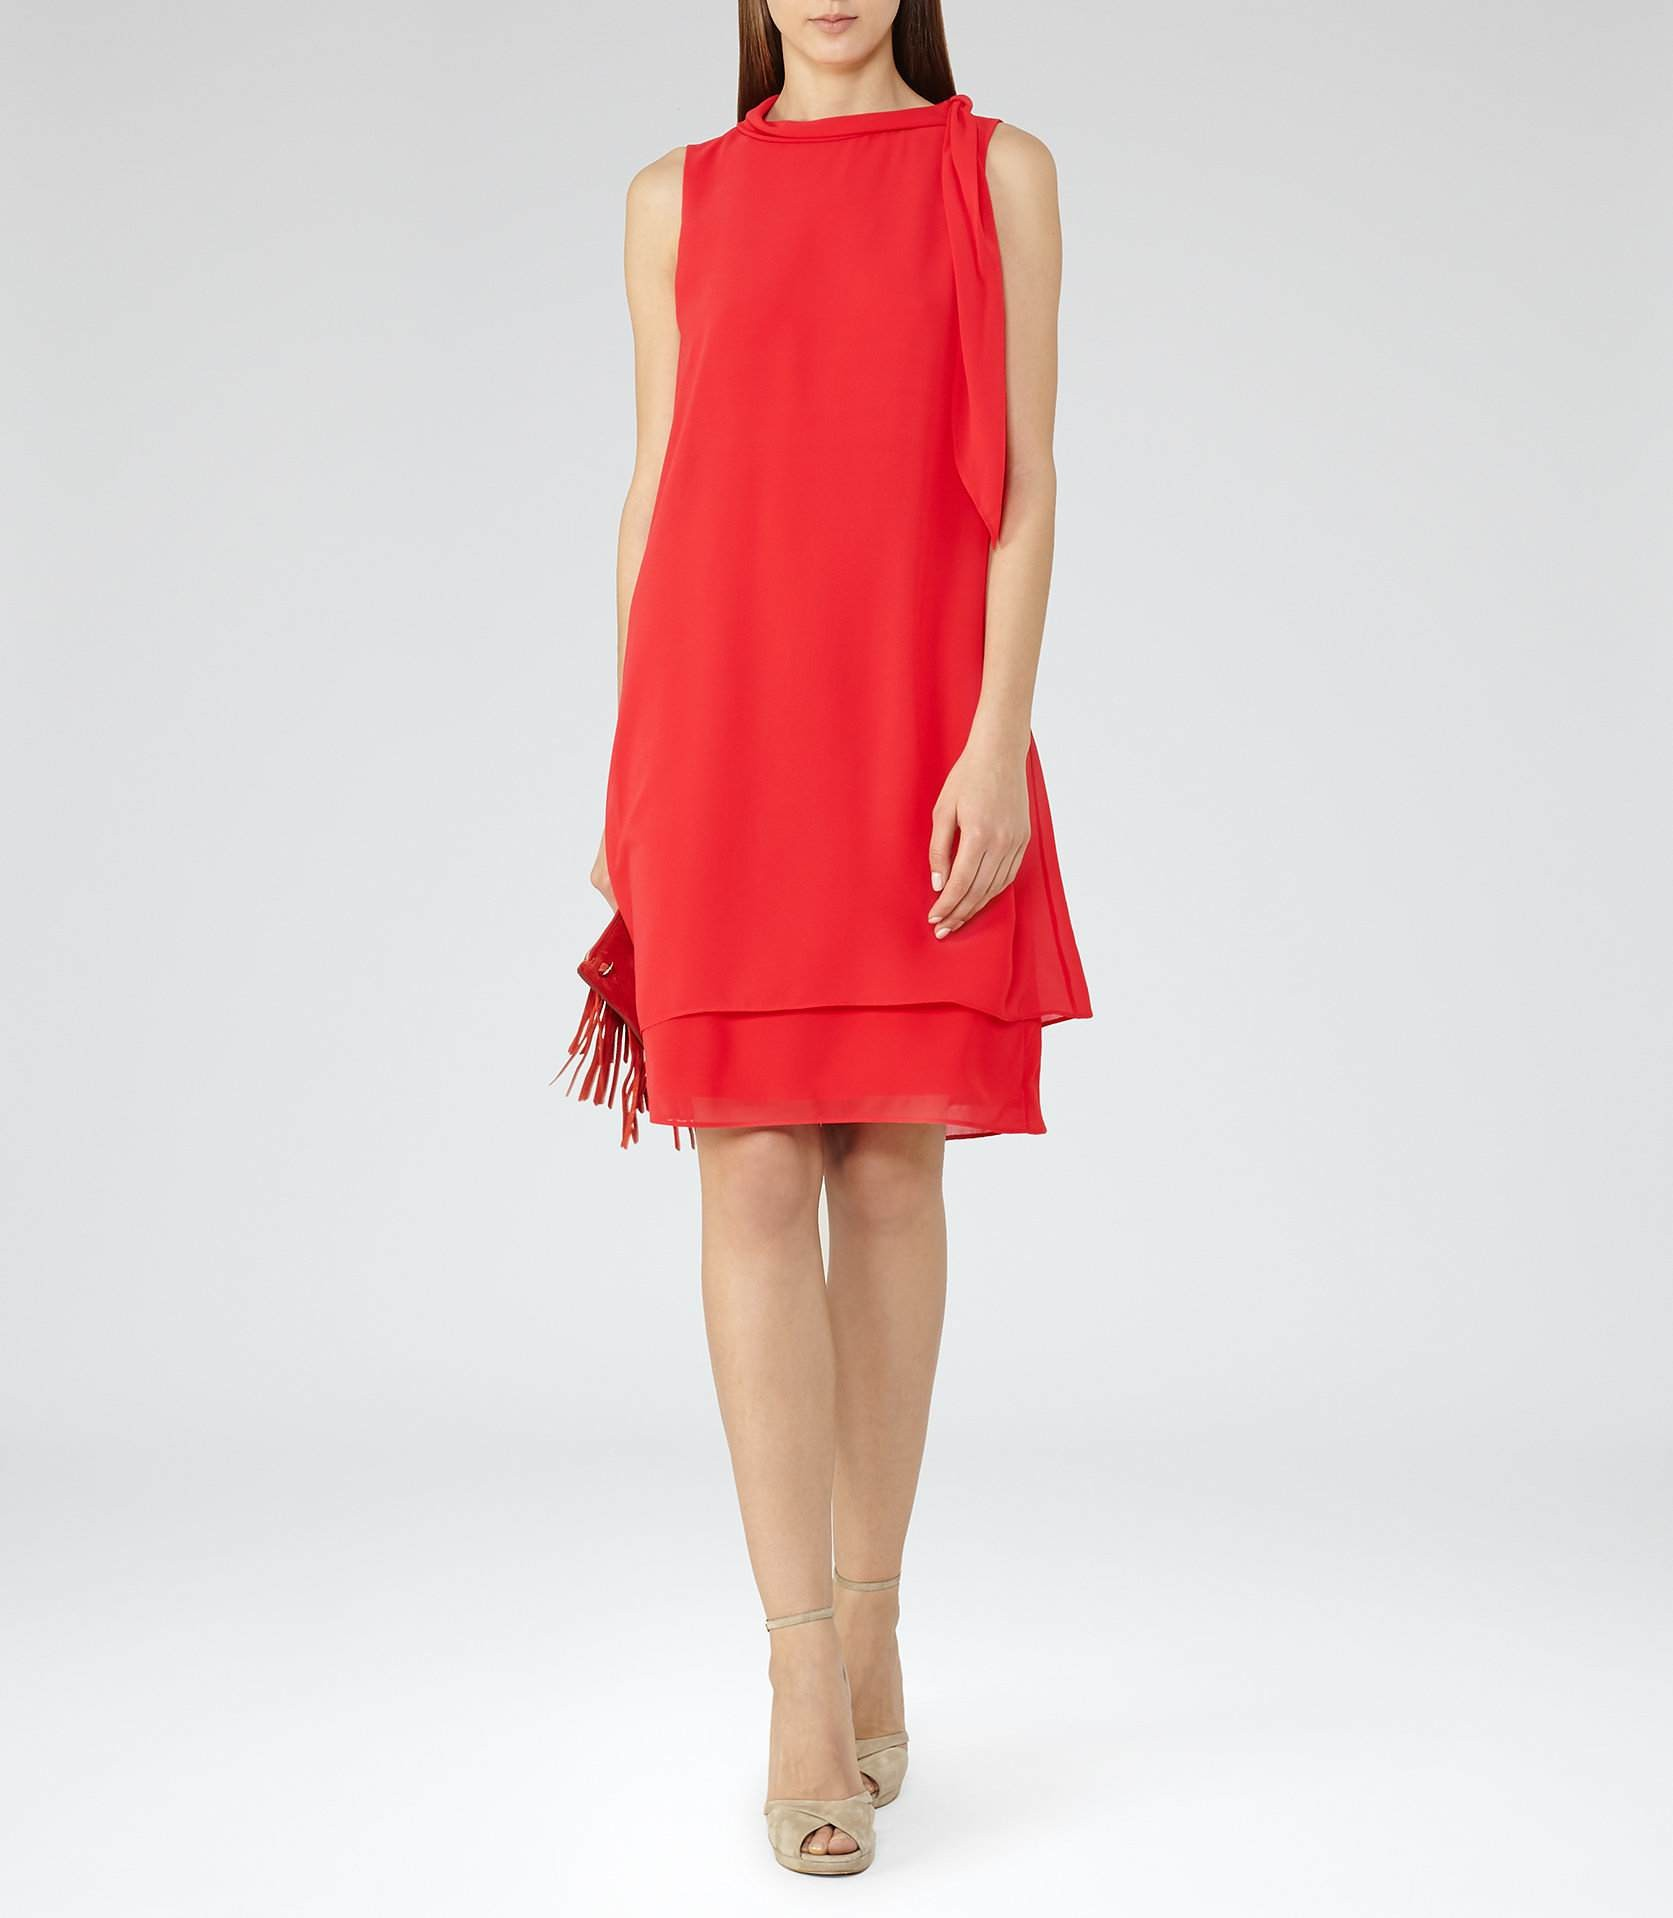 f75acfb8e Reiss Aries Cherry Red Tie-Neck Dress 29727265